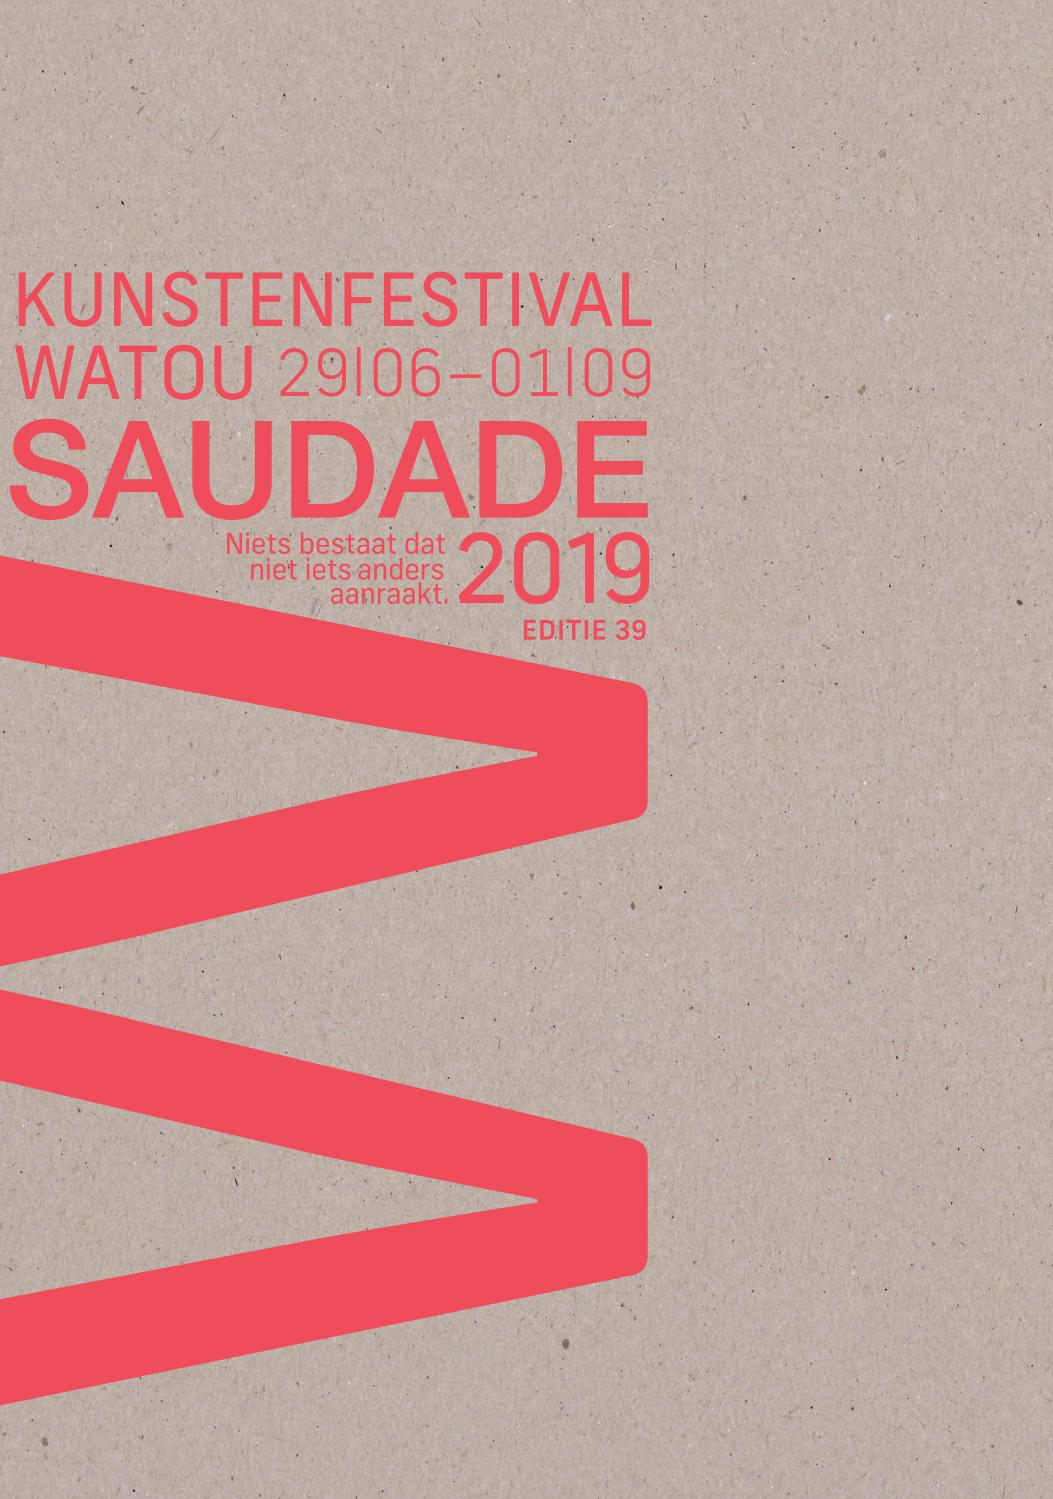 Kunstenfestival Watou 2019 By Vzwkunst Issuu